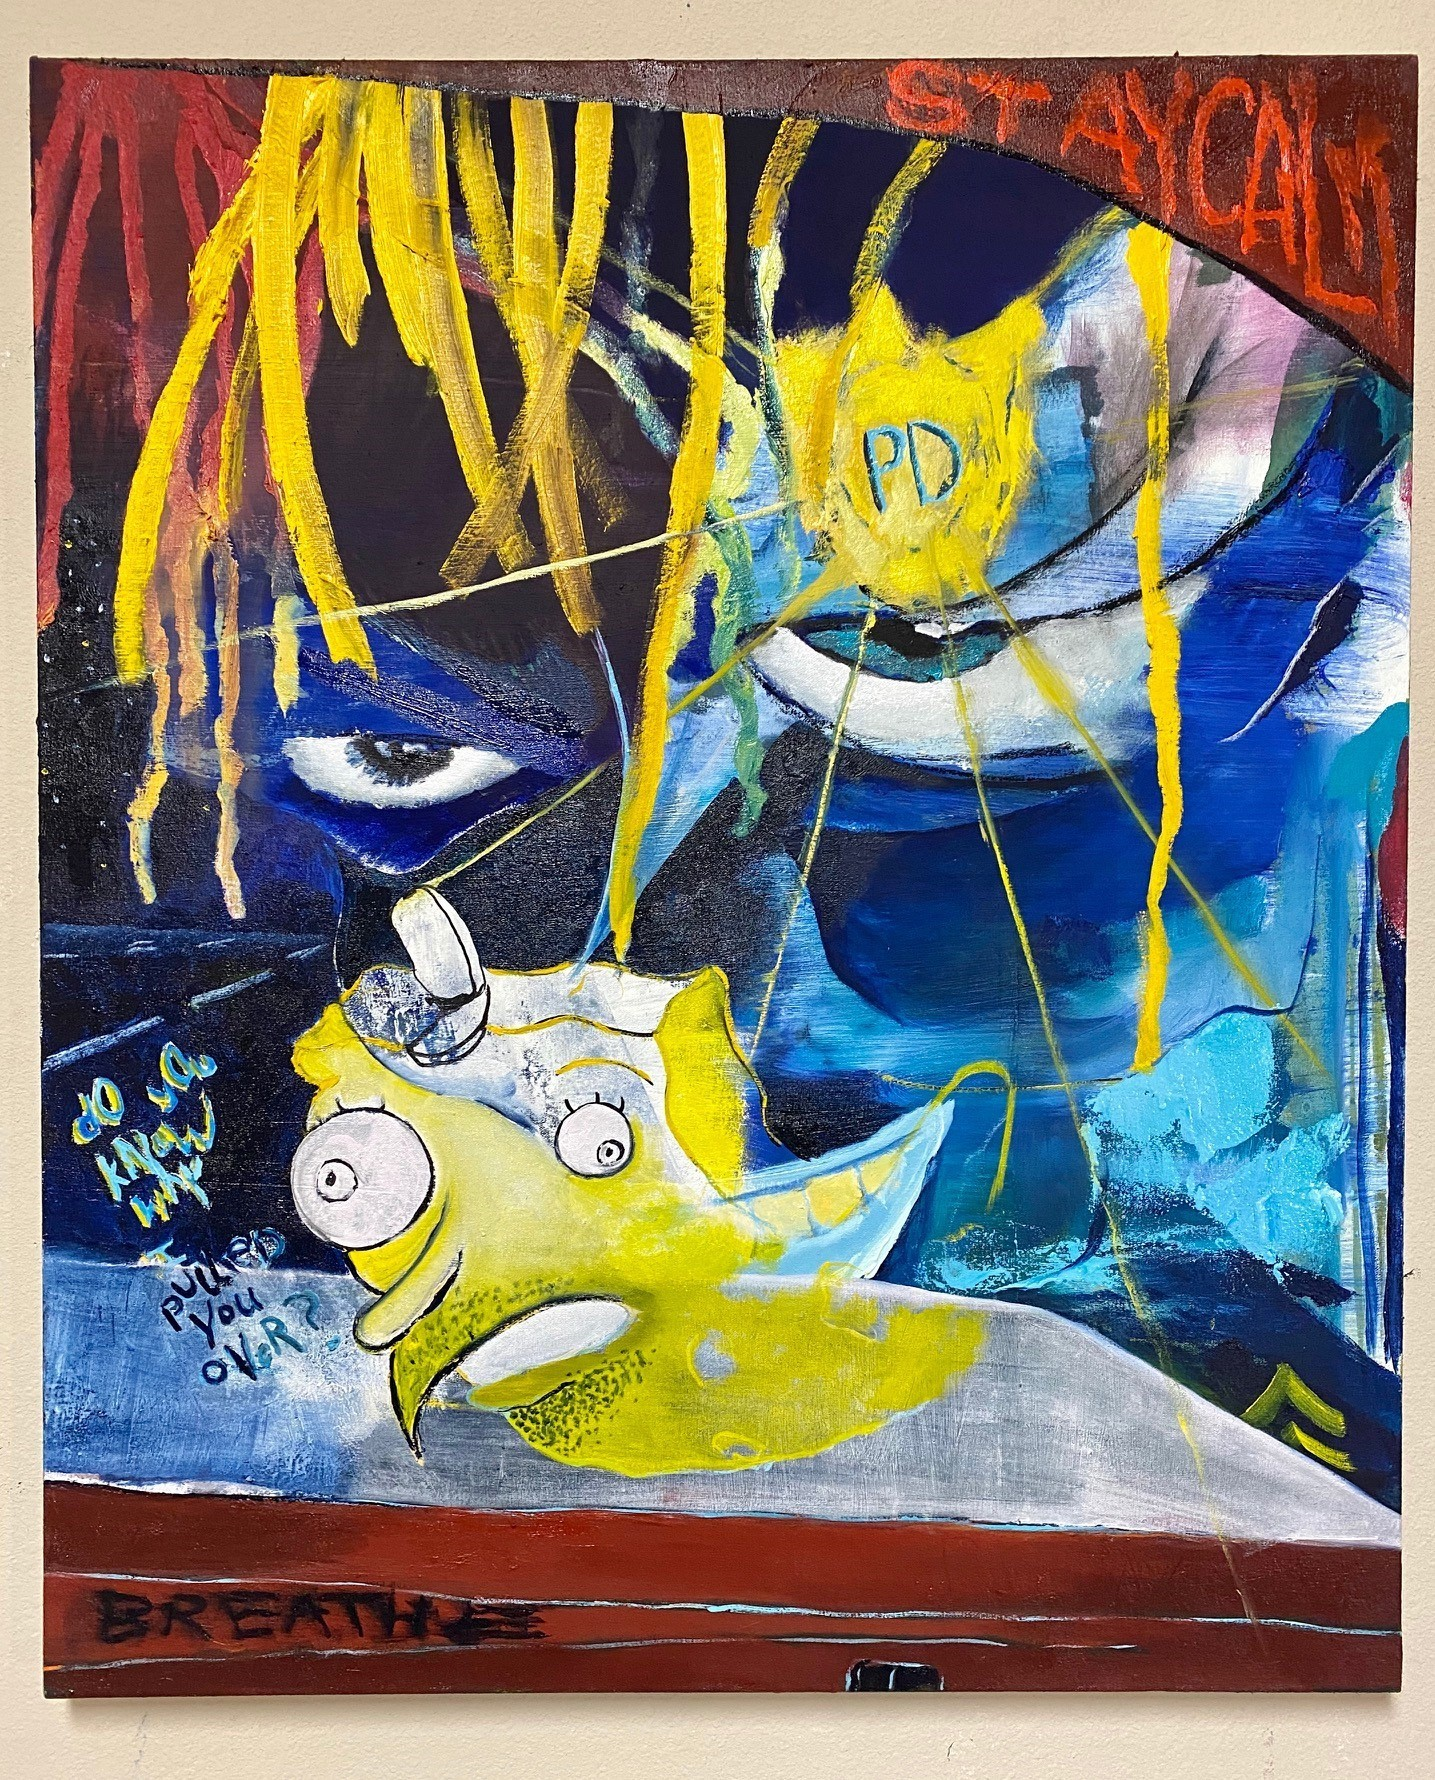 A surrealist painting depicts Spongebob Square Pants and a menacing police officer